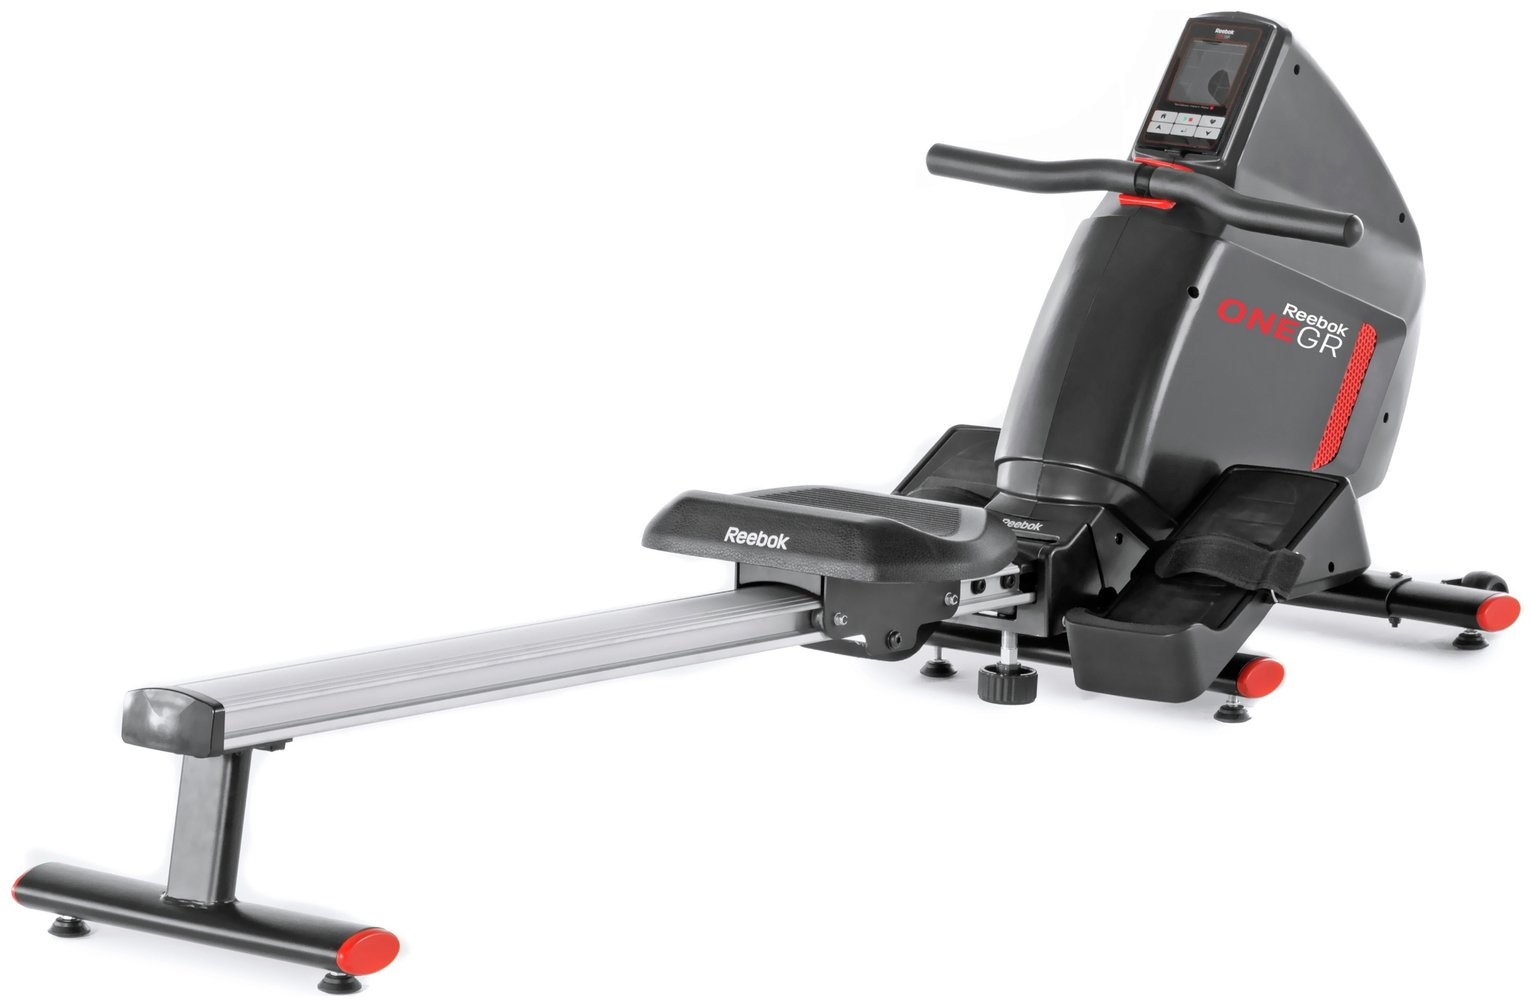 Reebok GR Rower Rowing Machine - Black Best Price and Cheapest